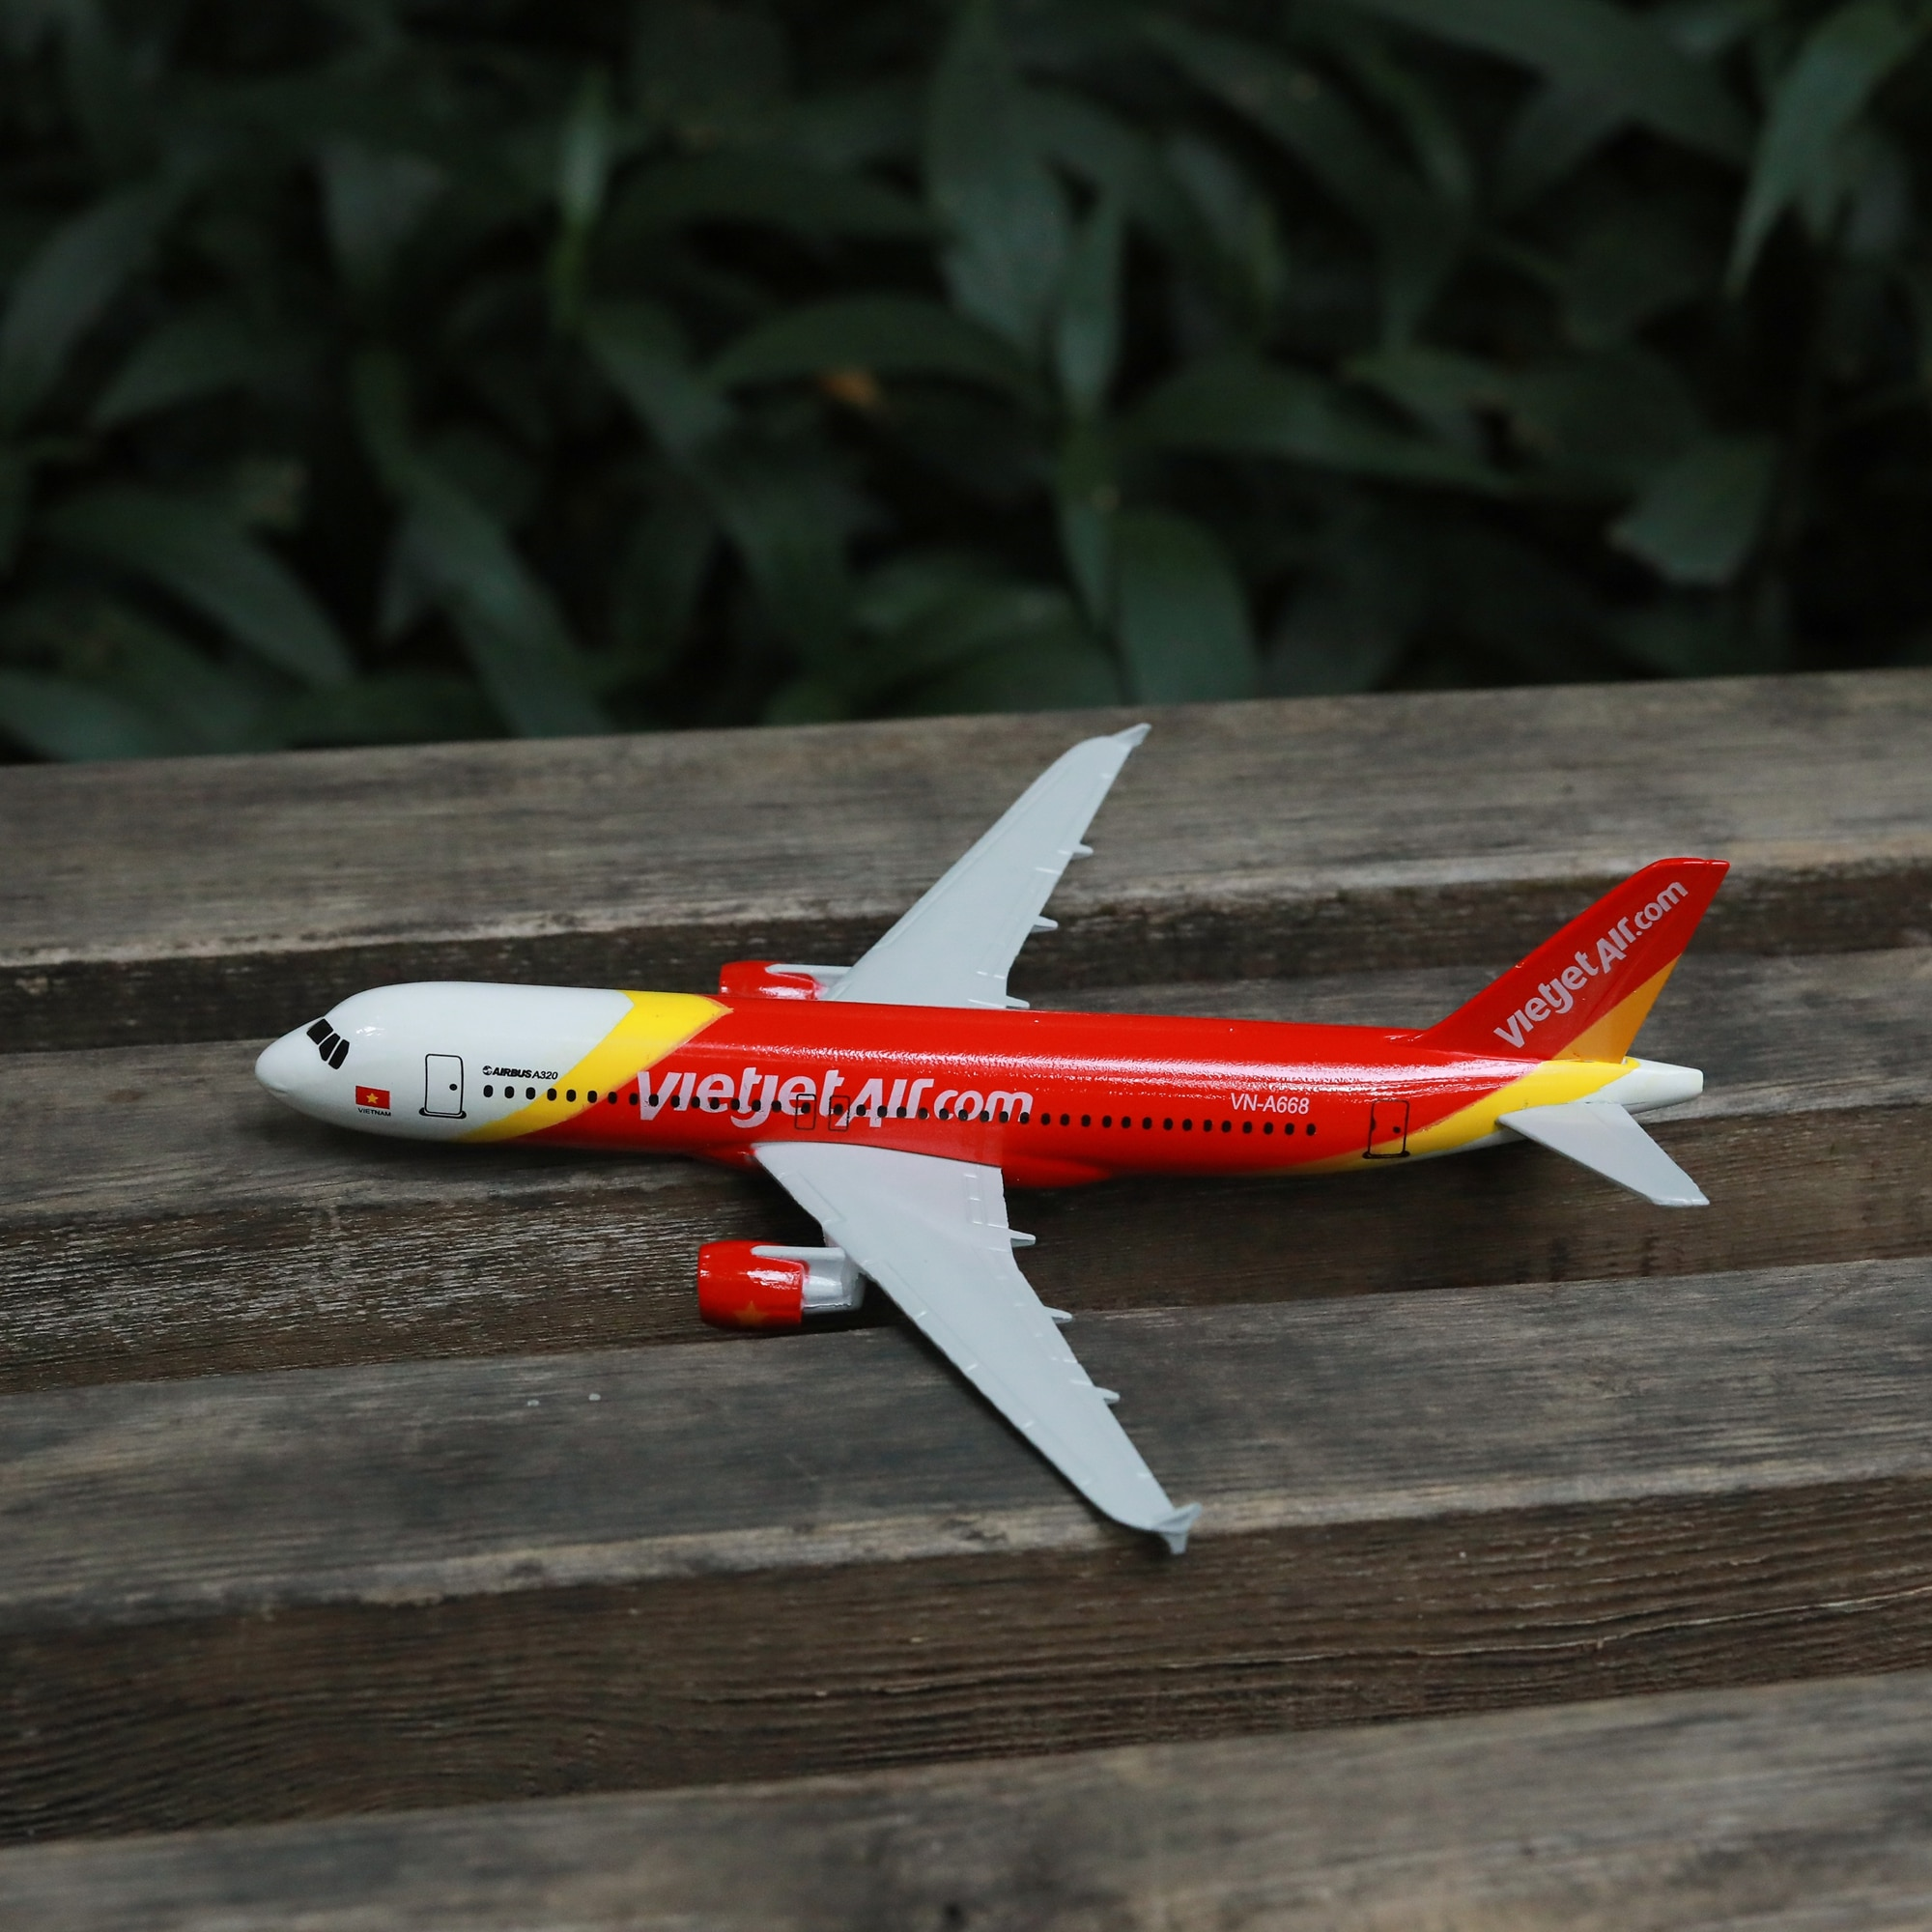 Vietnam Airlines A320 Airplane Diecast Aircraft Model 6 Metal Plane Aeroplane Home Office Decor Mini Moto Toys for Children air france a380 airplane diecast aircraft model 6 metal plane aeroplane home office decor mini moto toys for children